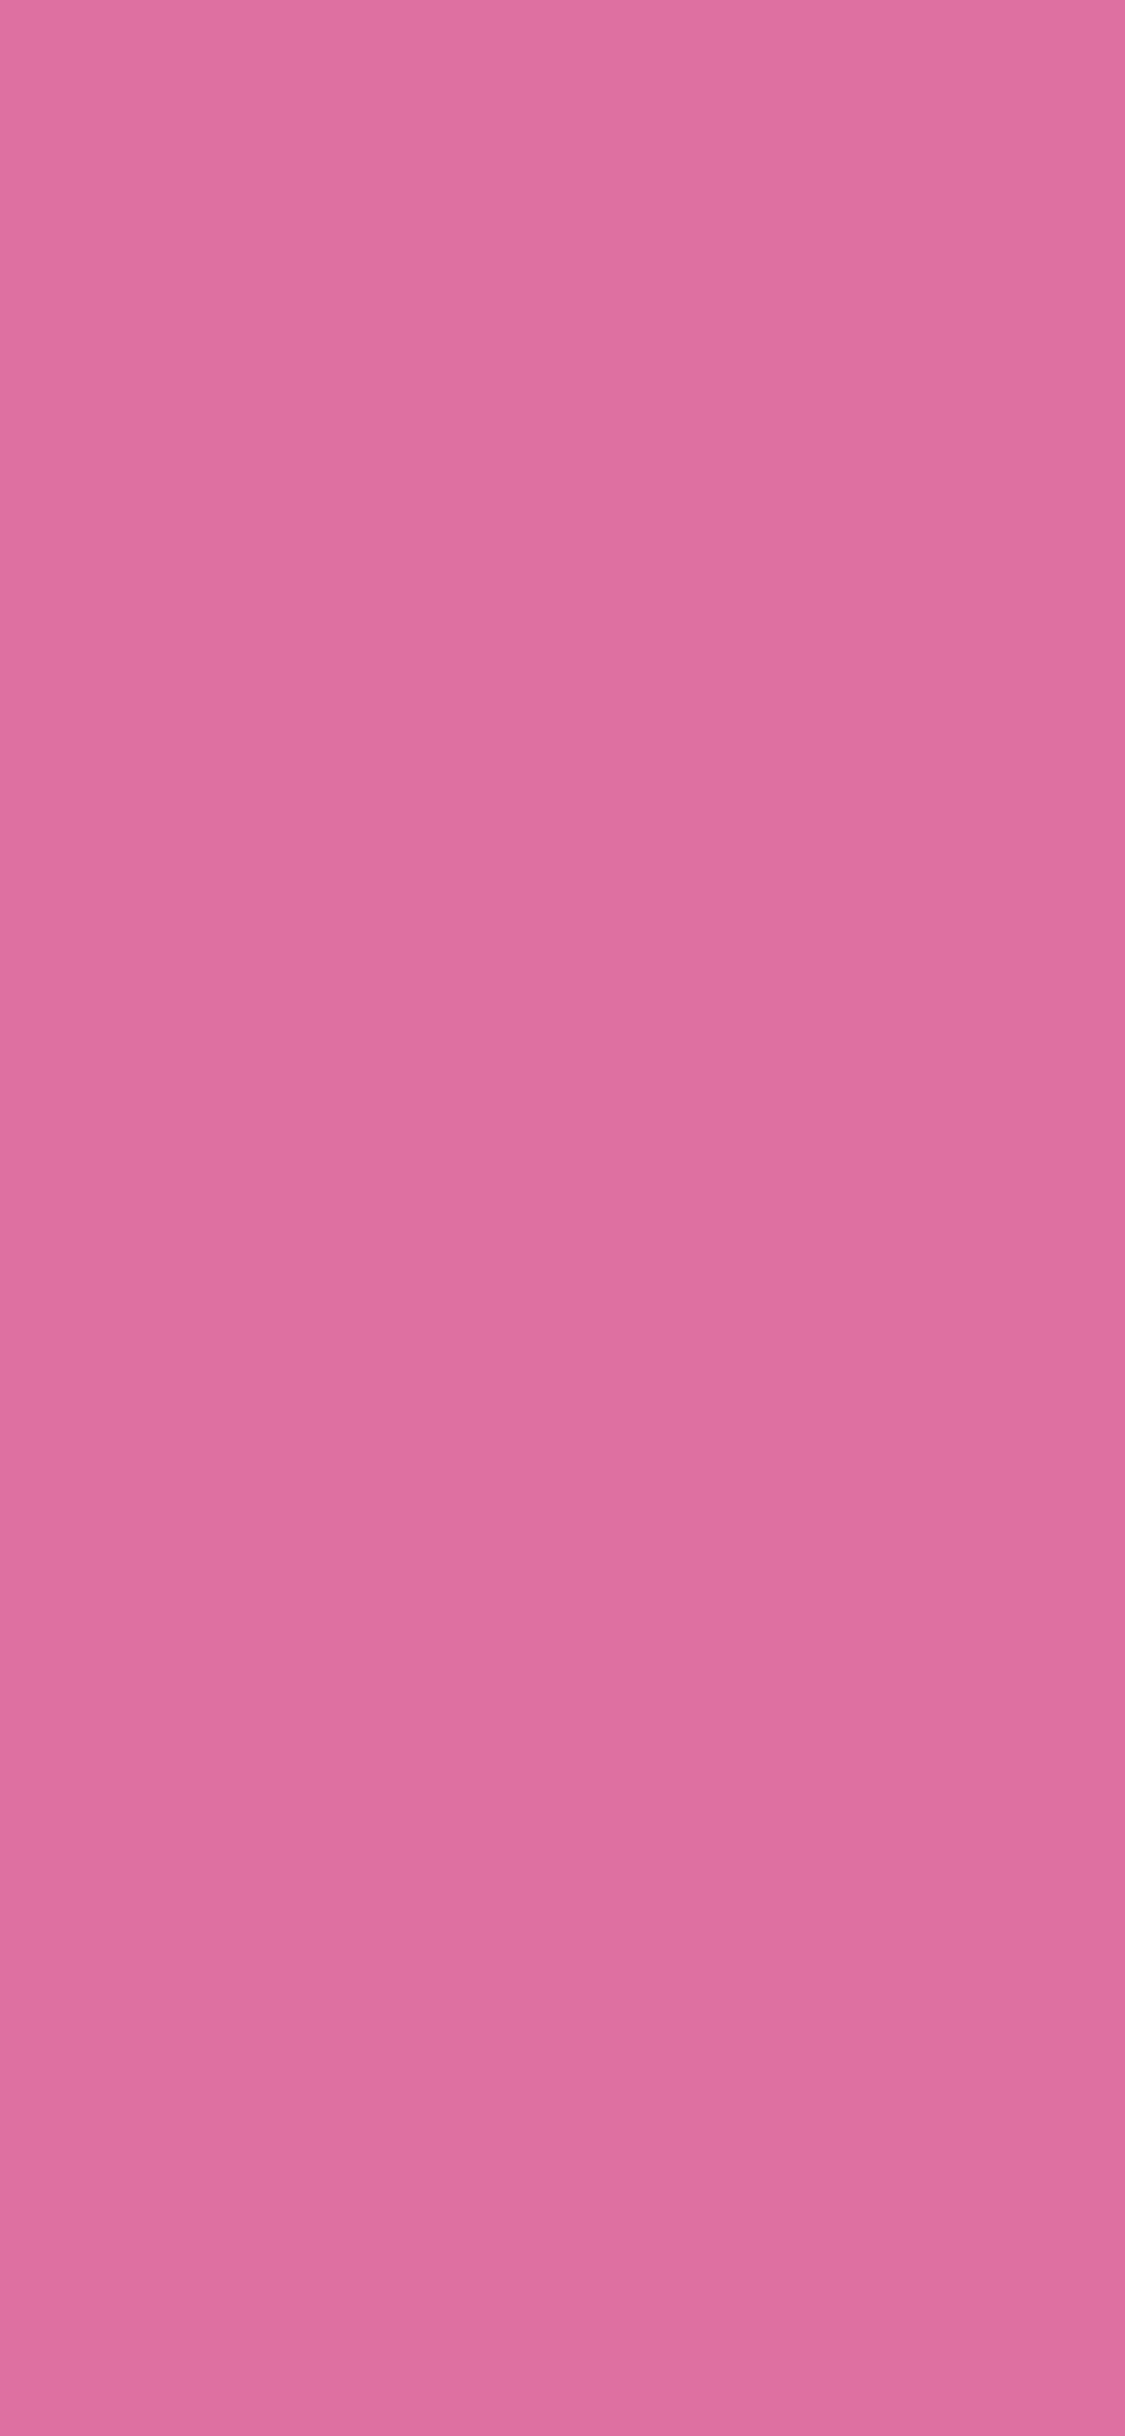 1125x2436 Thulian Pink Solid Color Background